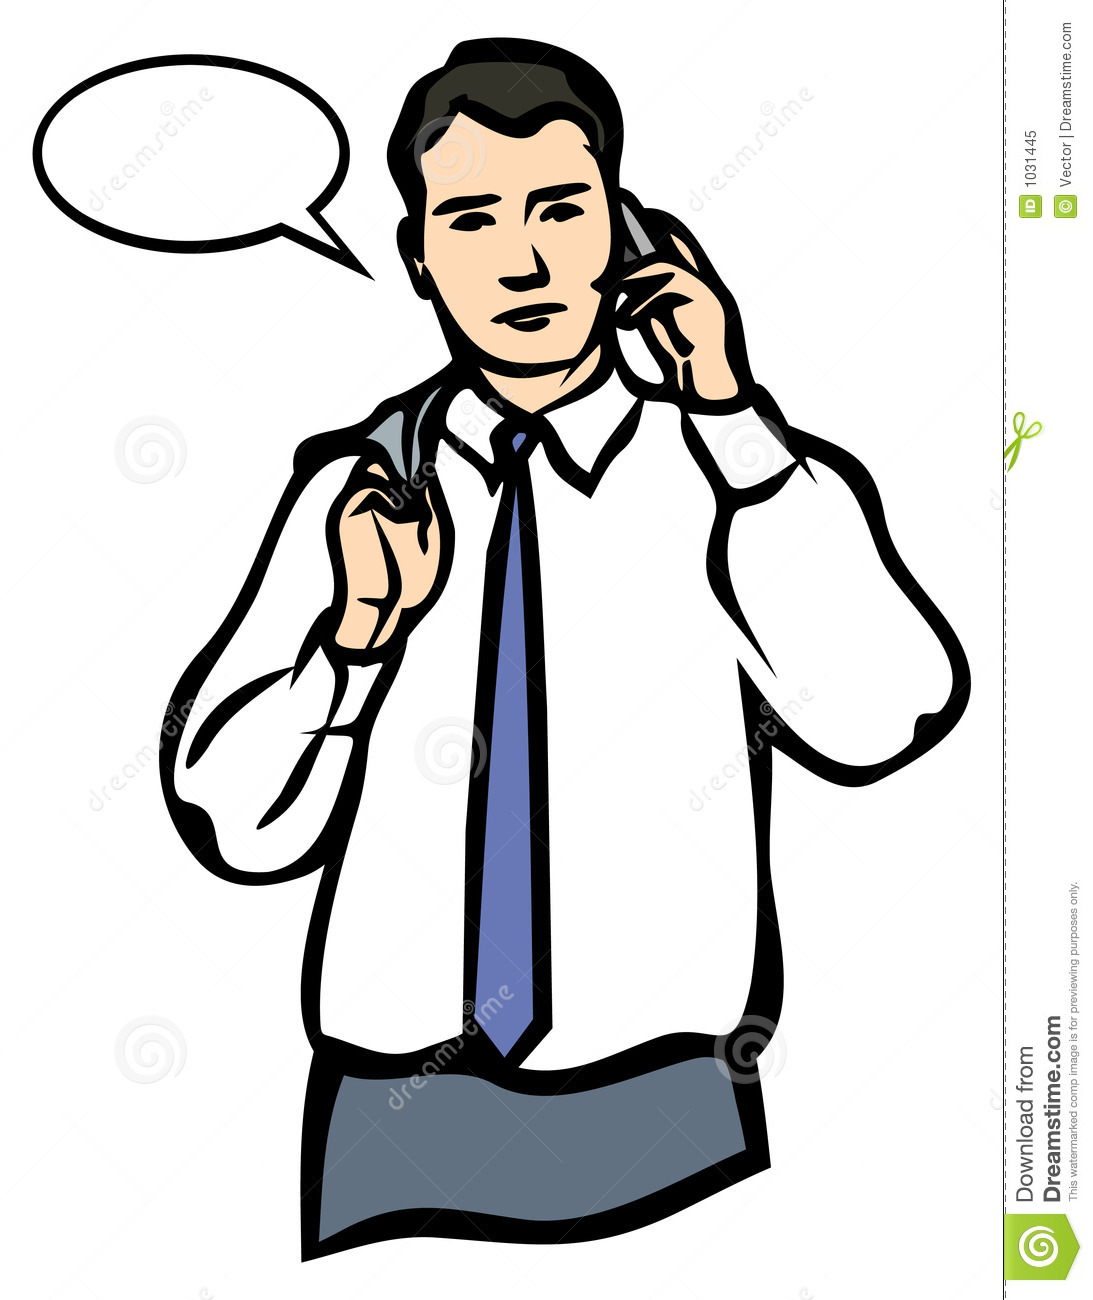 1093x1300 Phone Clipart Mobile Calling